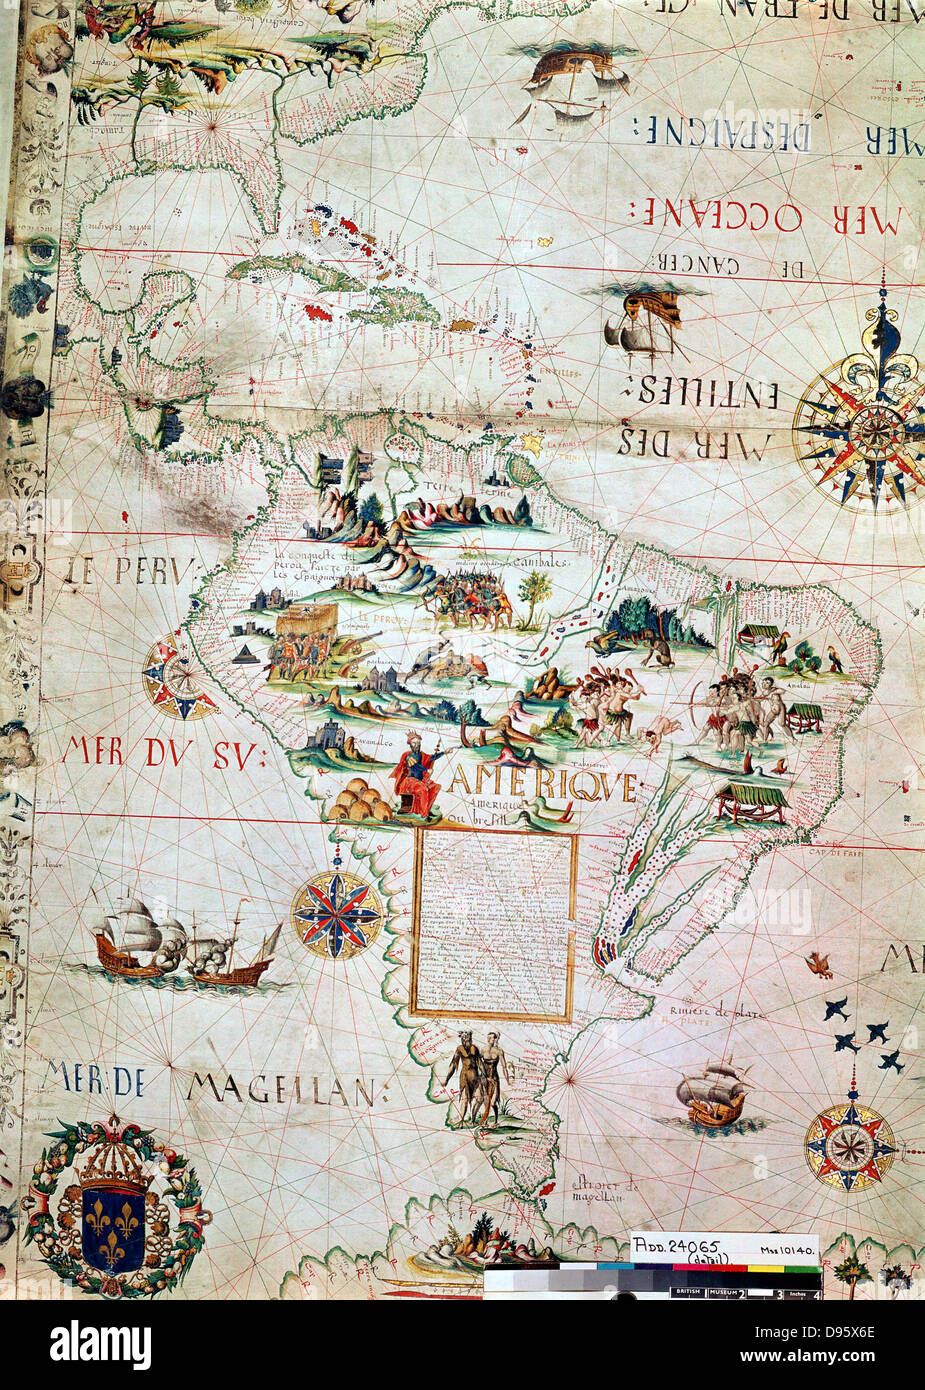 French map of Central and South America, showing Florida ...